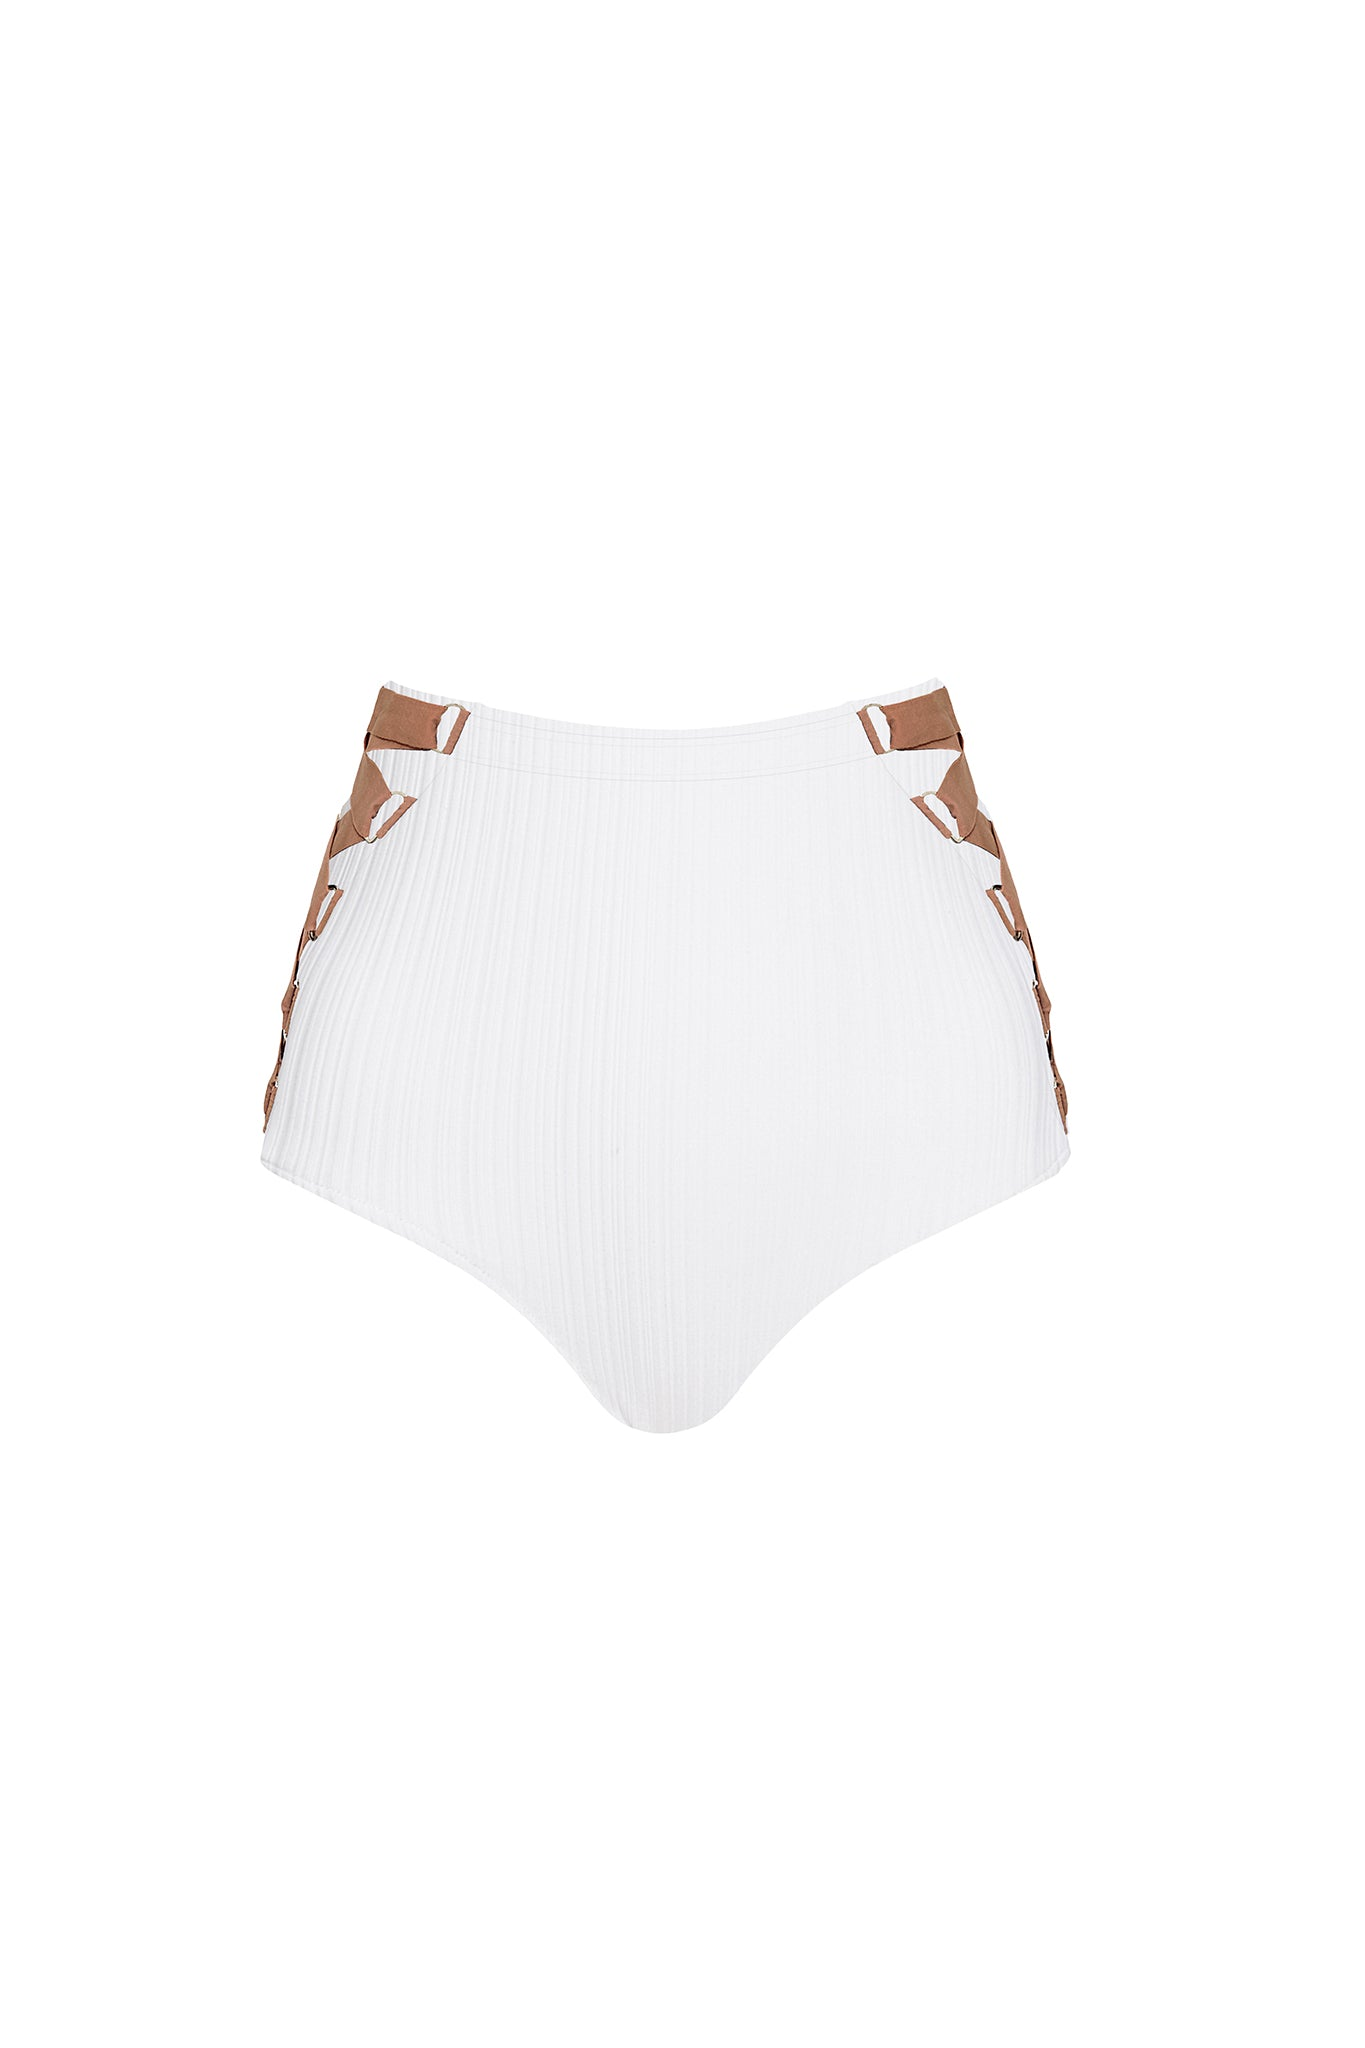 Riley Bottom - White Rib